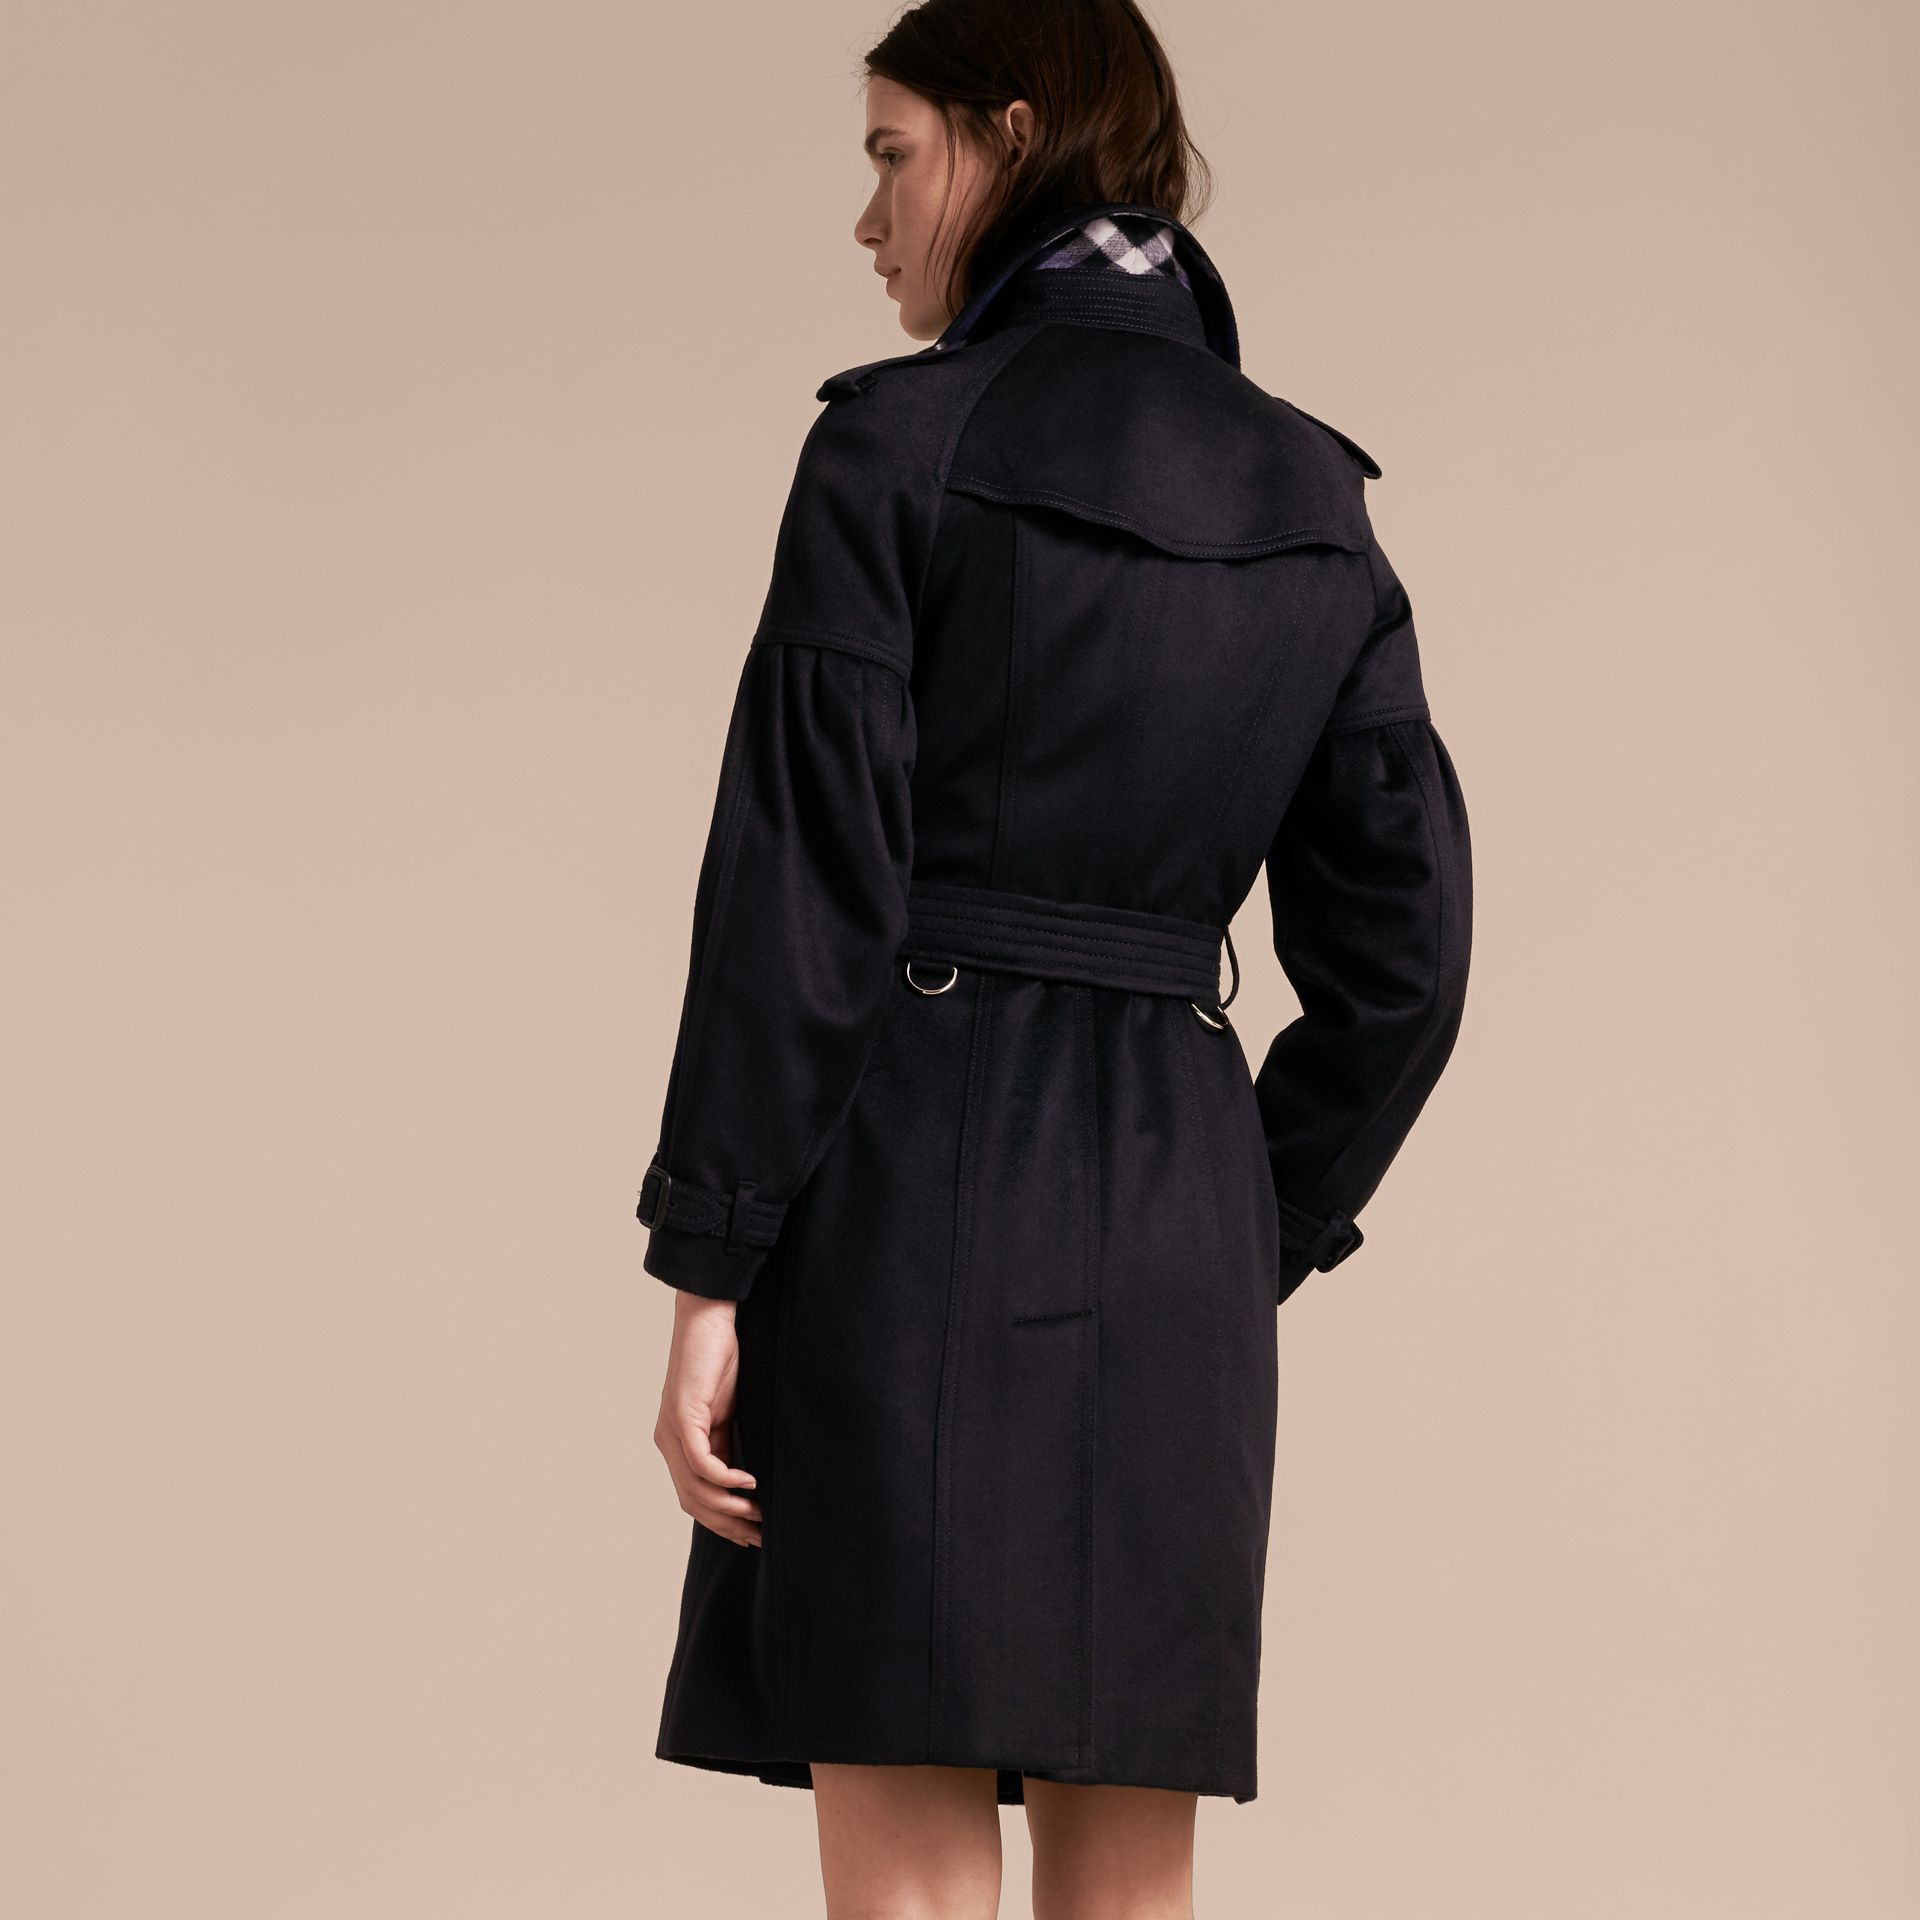 Navy Cashmere Trench Coat with Puff Sleeves Navy - gallery image 3